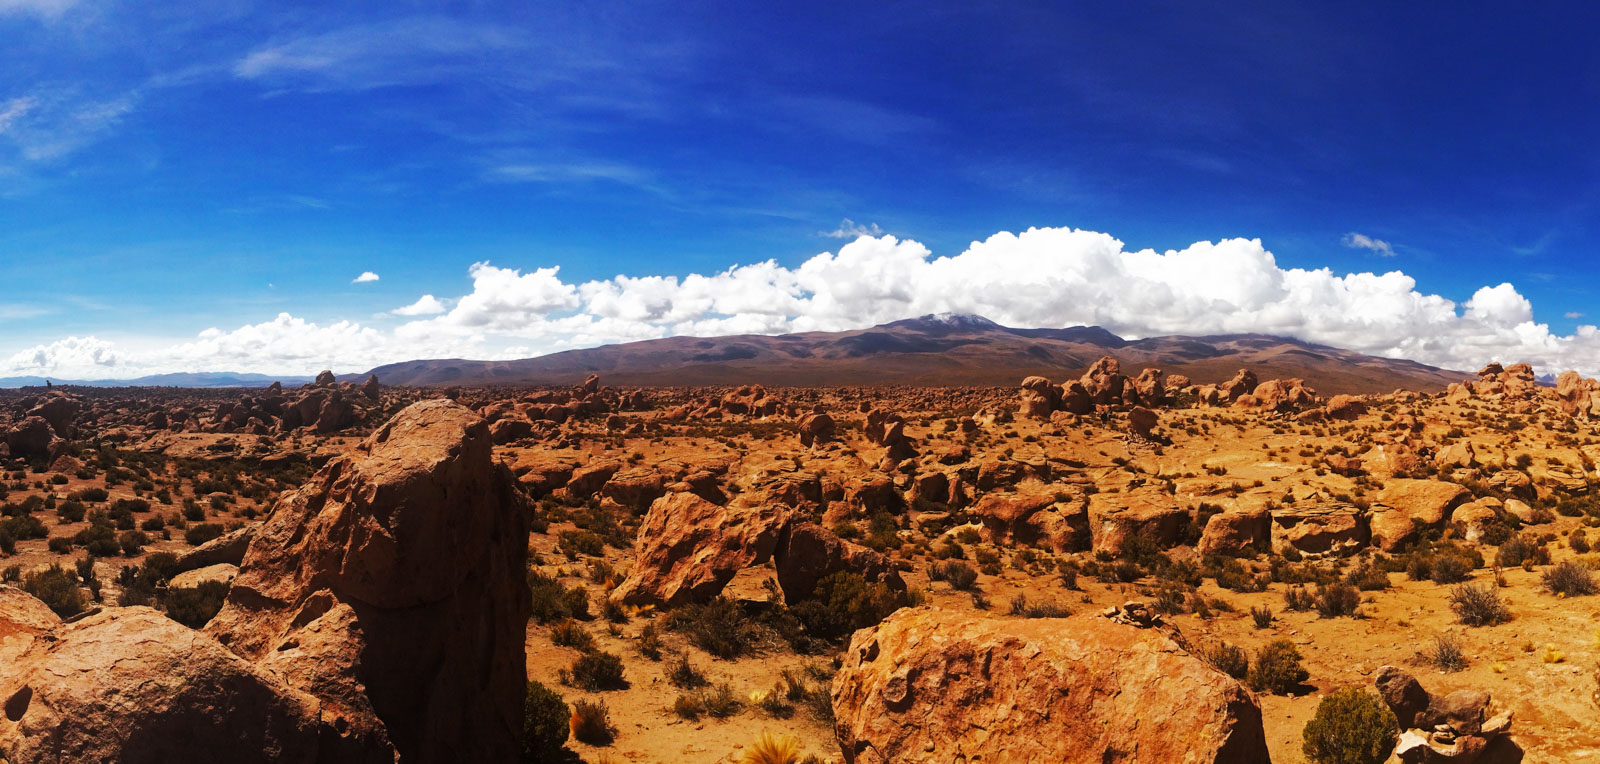 Here's the magic of backpacking San Pedro de Atacama. A view of the endless desert with rocks scattered all over